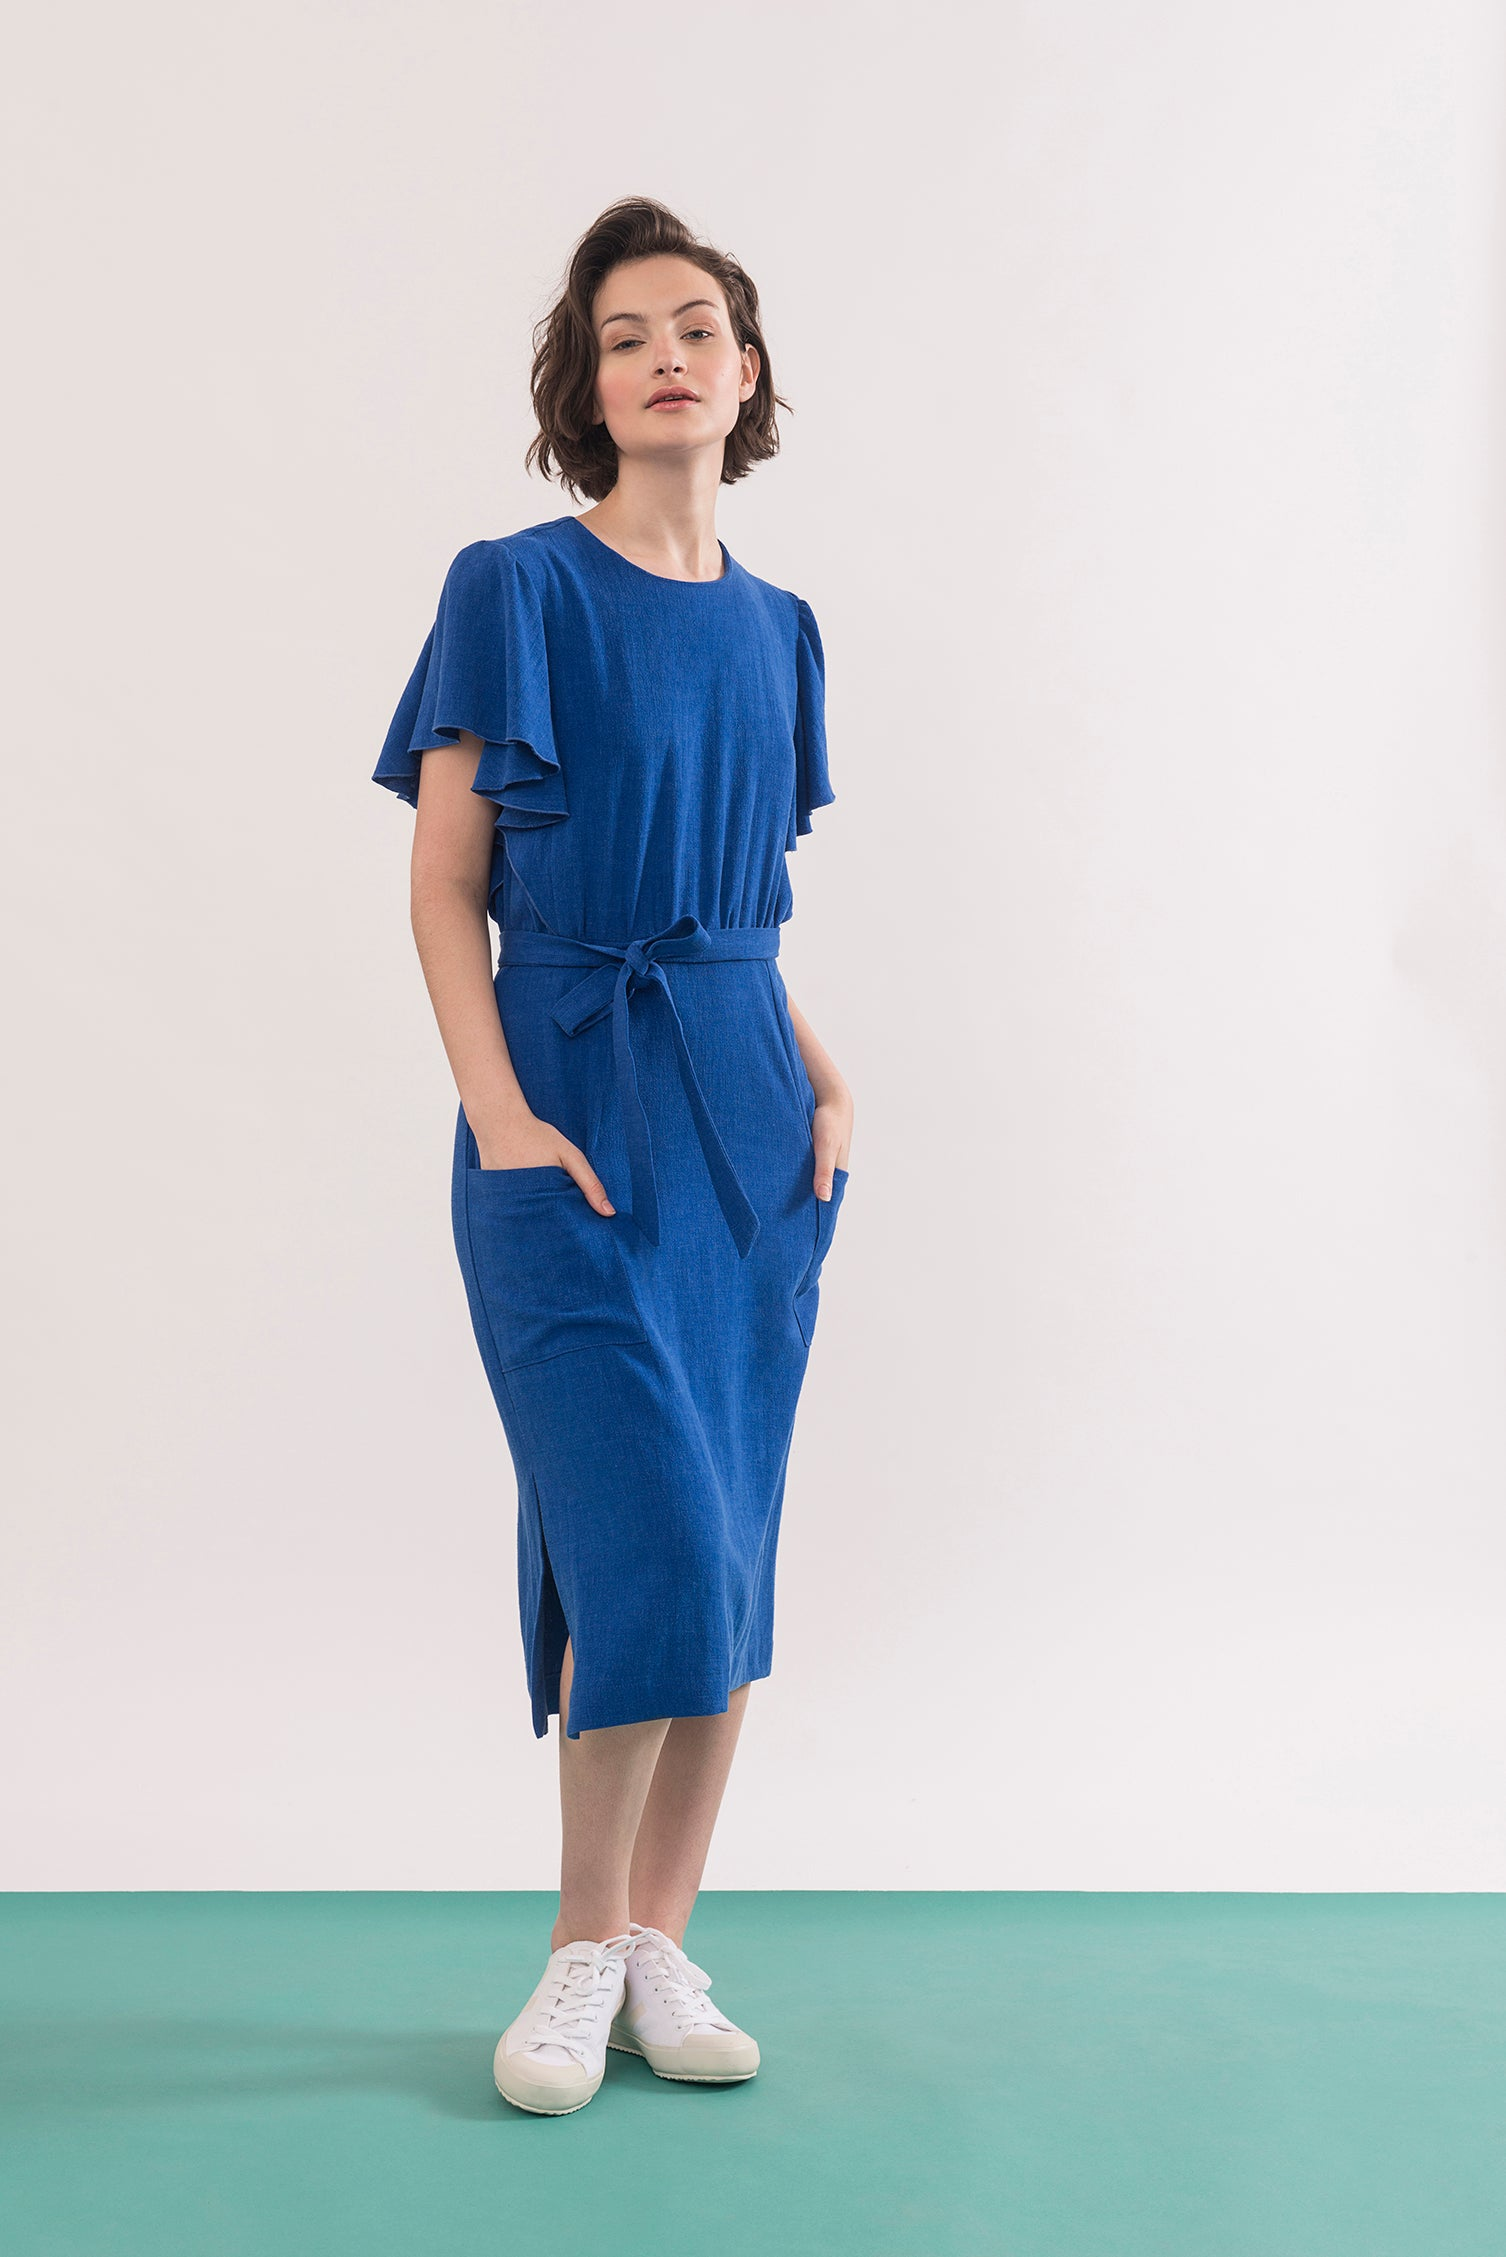 Klee Dress by Jennifer Glasgow, Electric Blue, flowing draped sleeves, mid-length, patch pockets, side vents, belt, rayon and linen, sizes XS to XL, made in Montreal